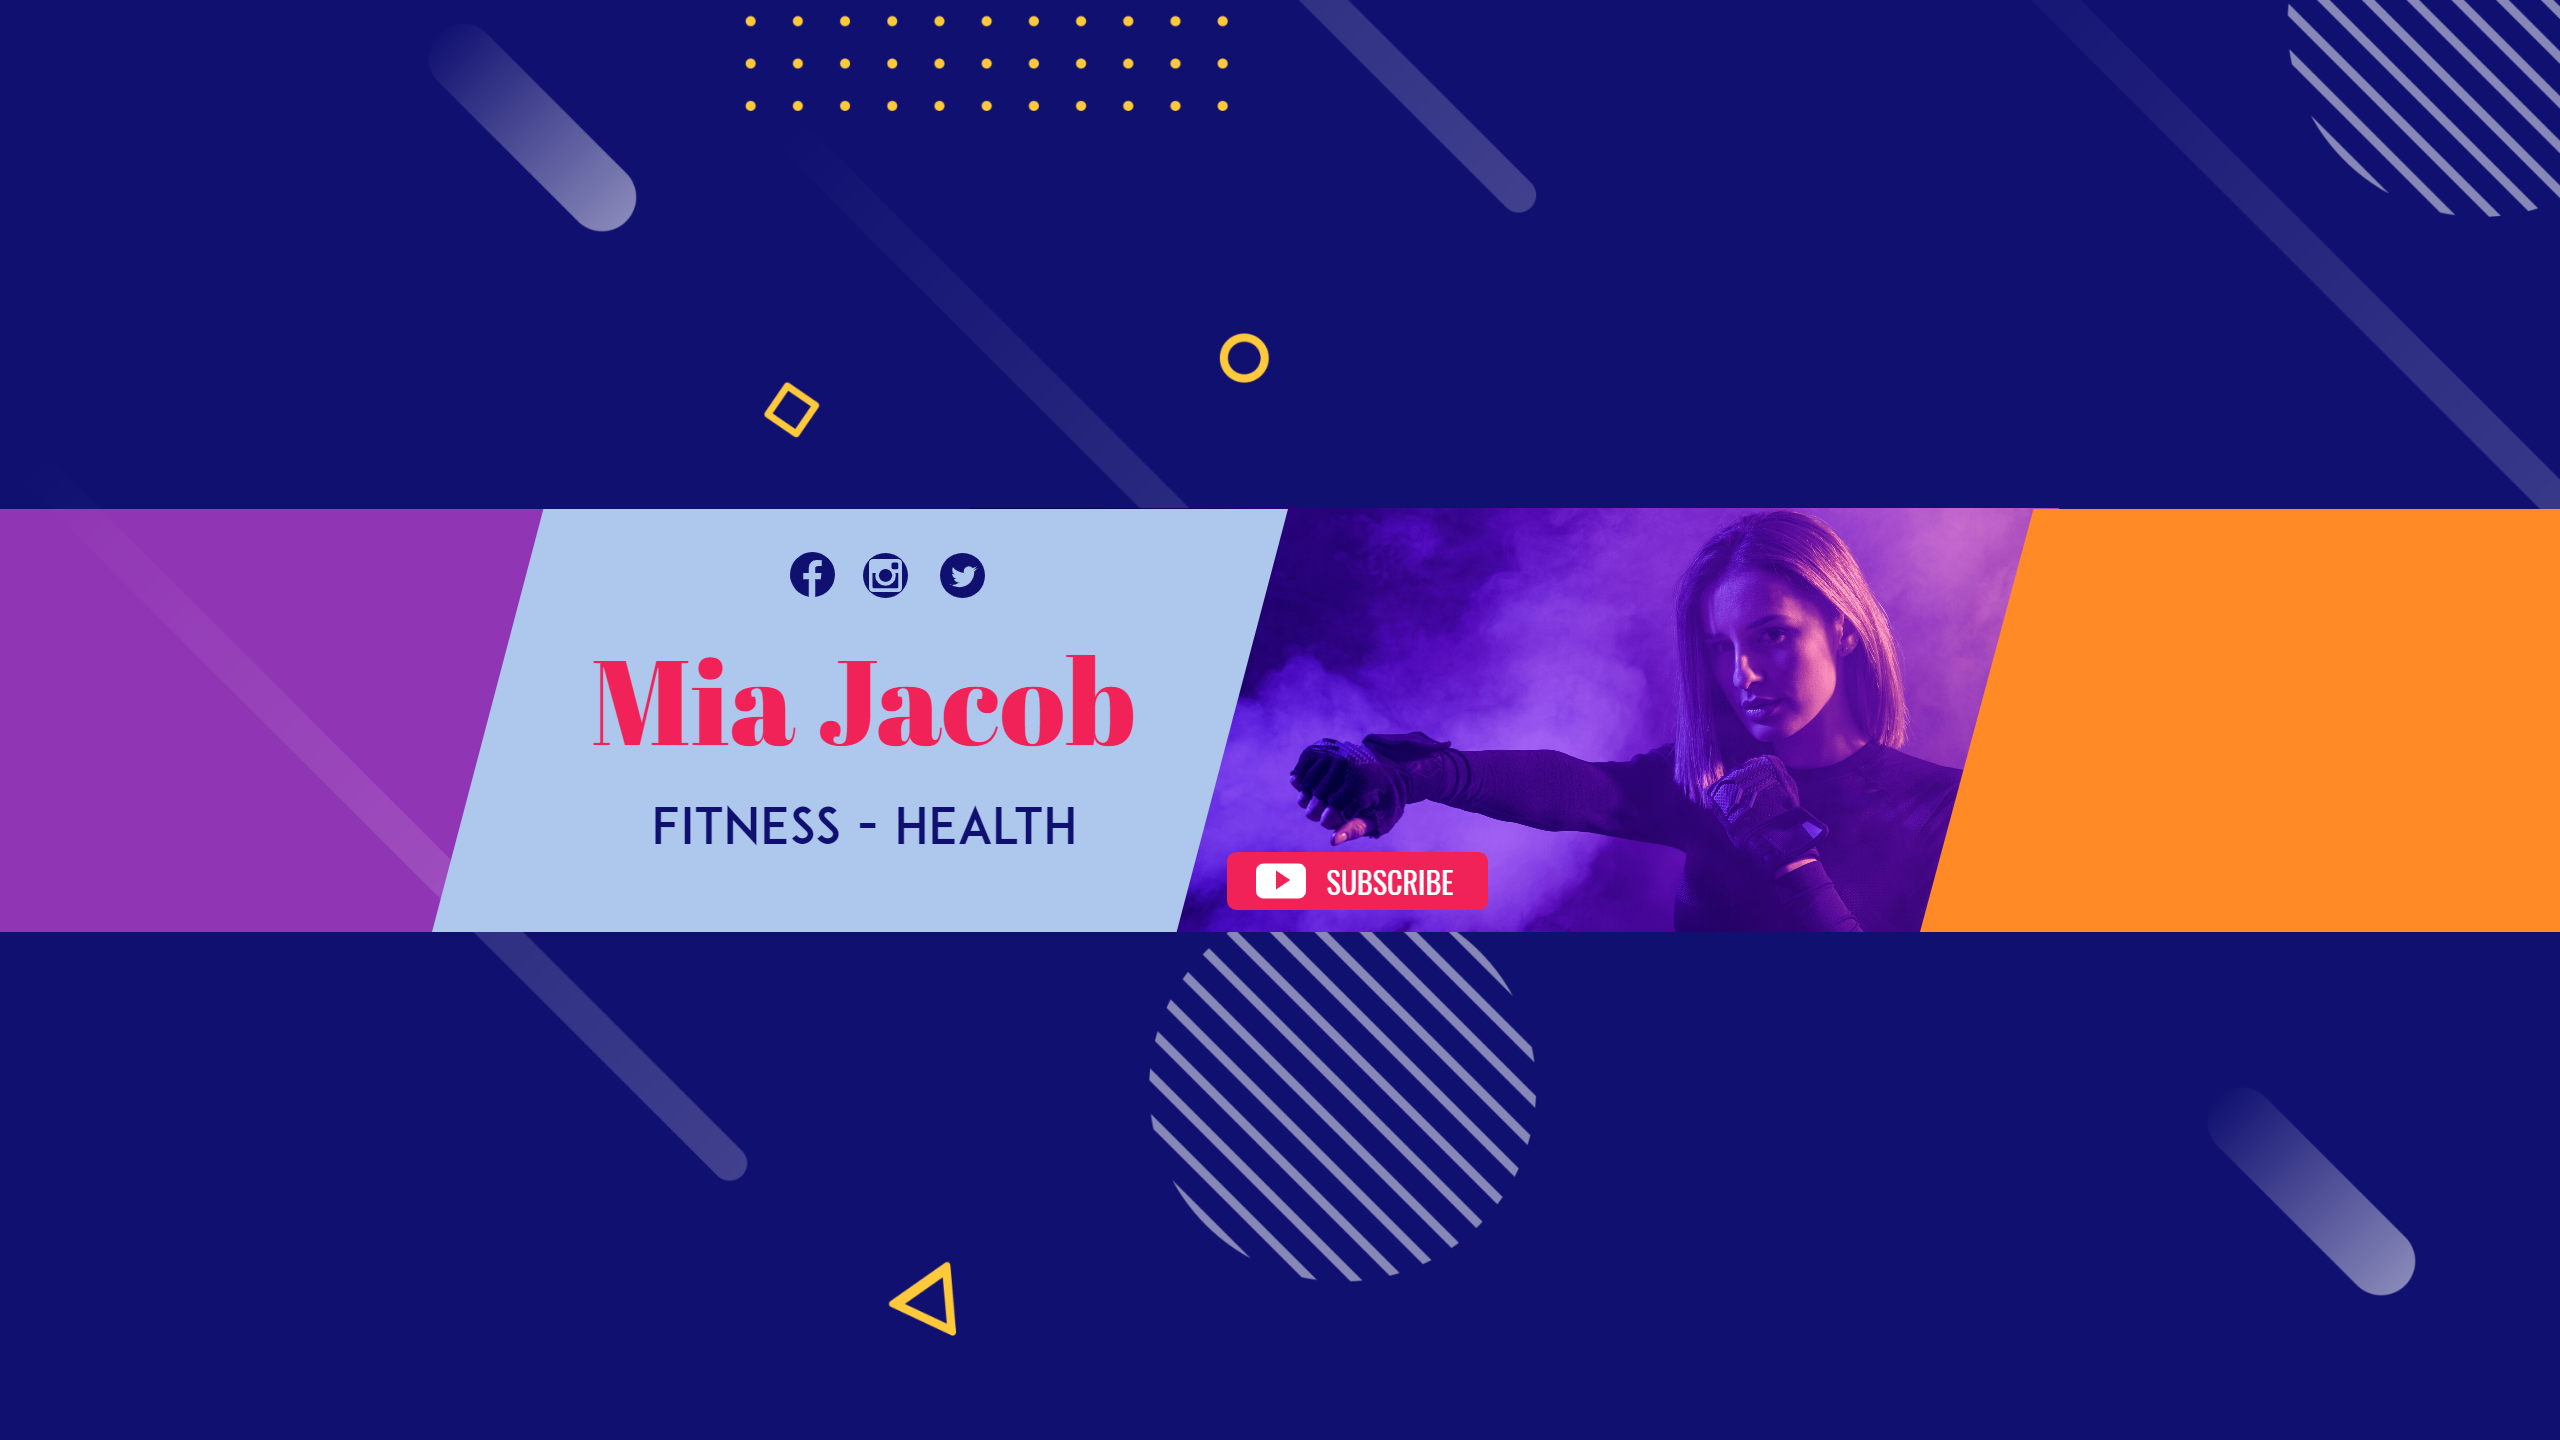 Youtube Fitness Health Sport Channel Design  Template